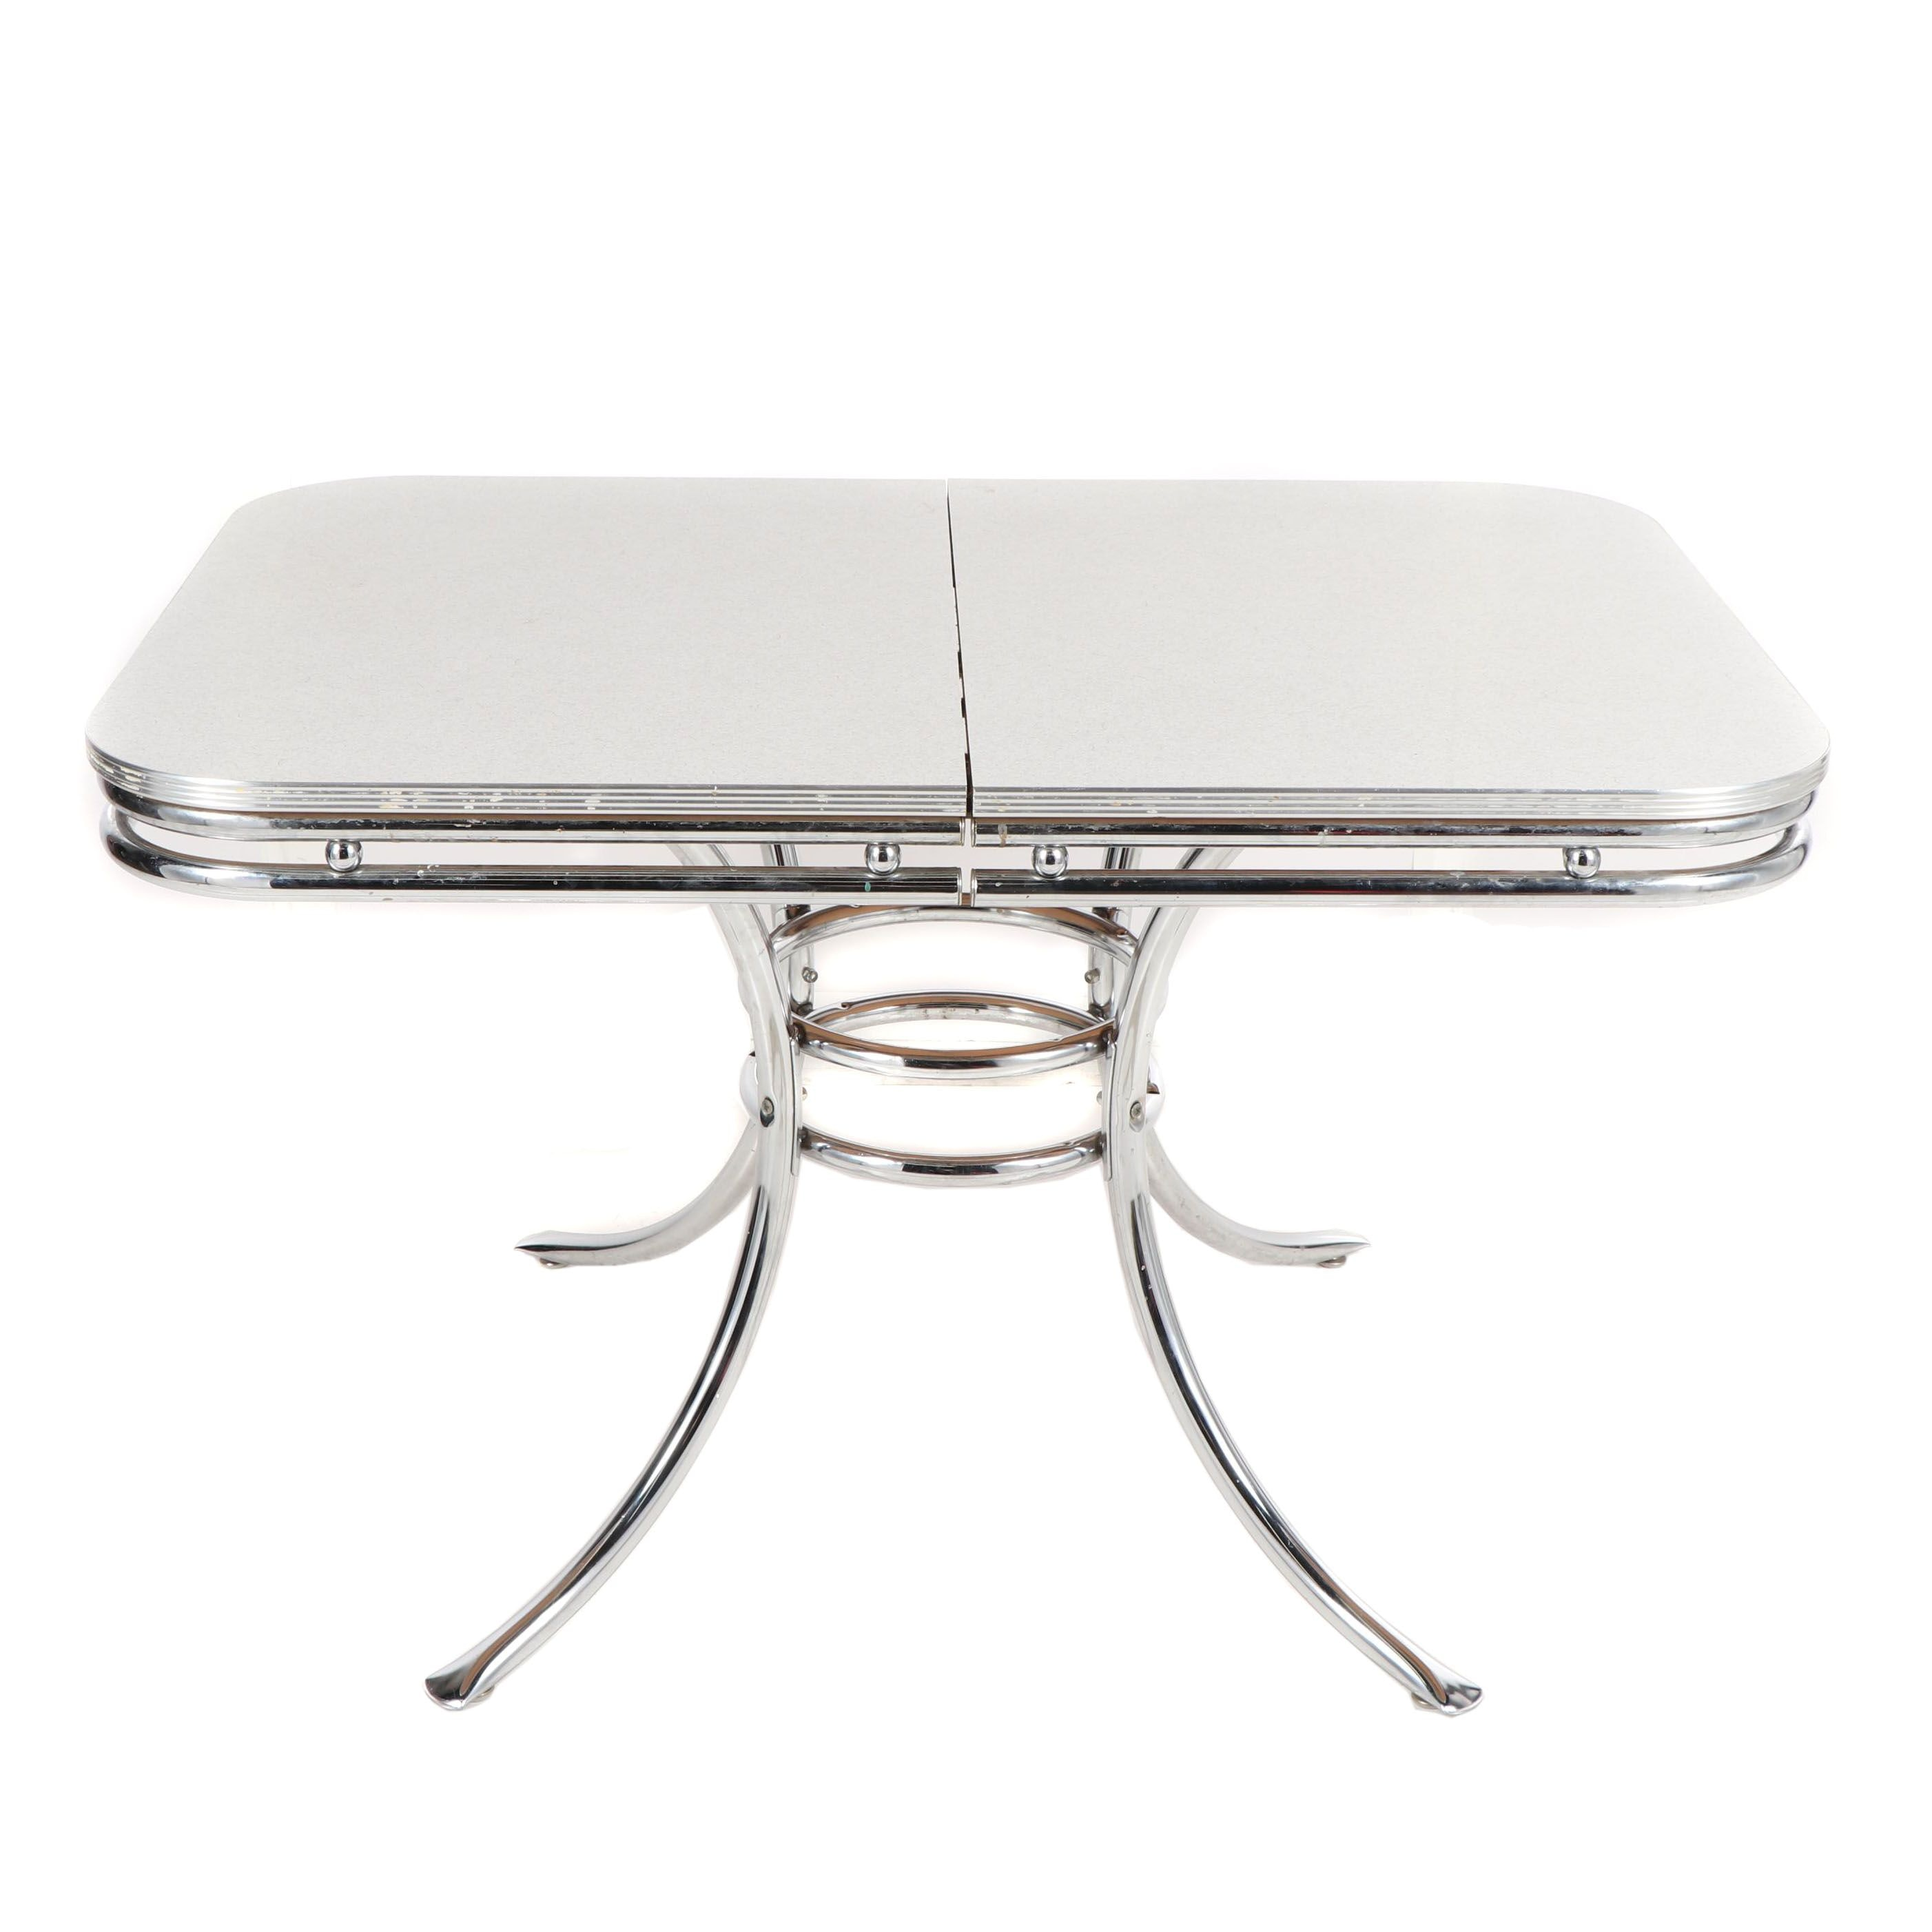 Mid Century Modern Melamine Resin and Chrome Kitchen Table, 20th Century